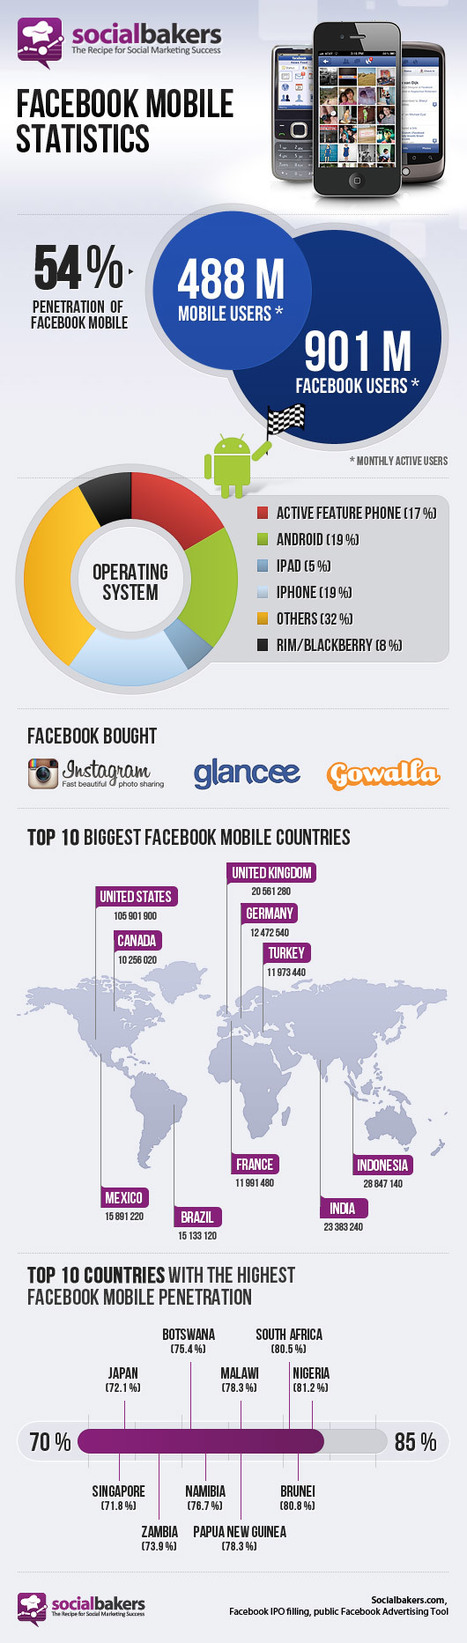 Facebook Mobile. Growing Fast – Infographic | Mobile Marketing Strategy and beyond | Scoop.it